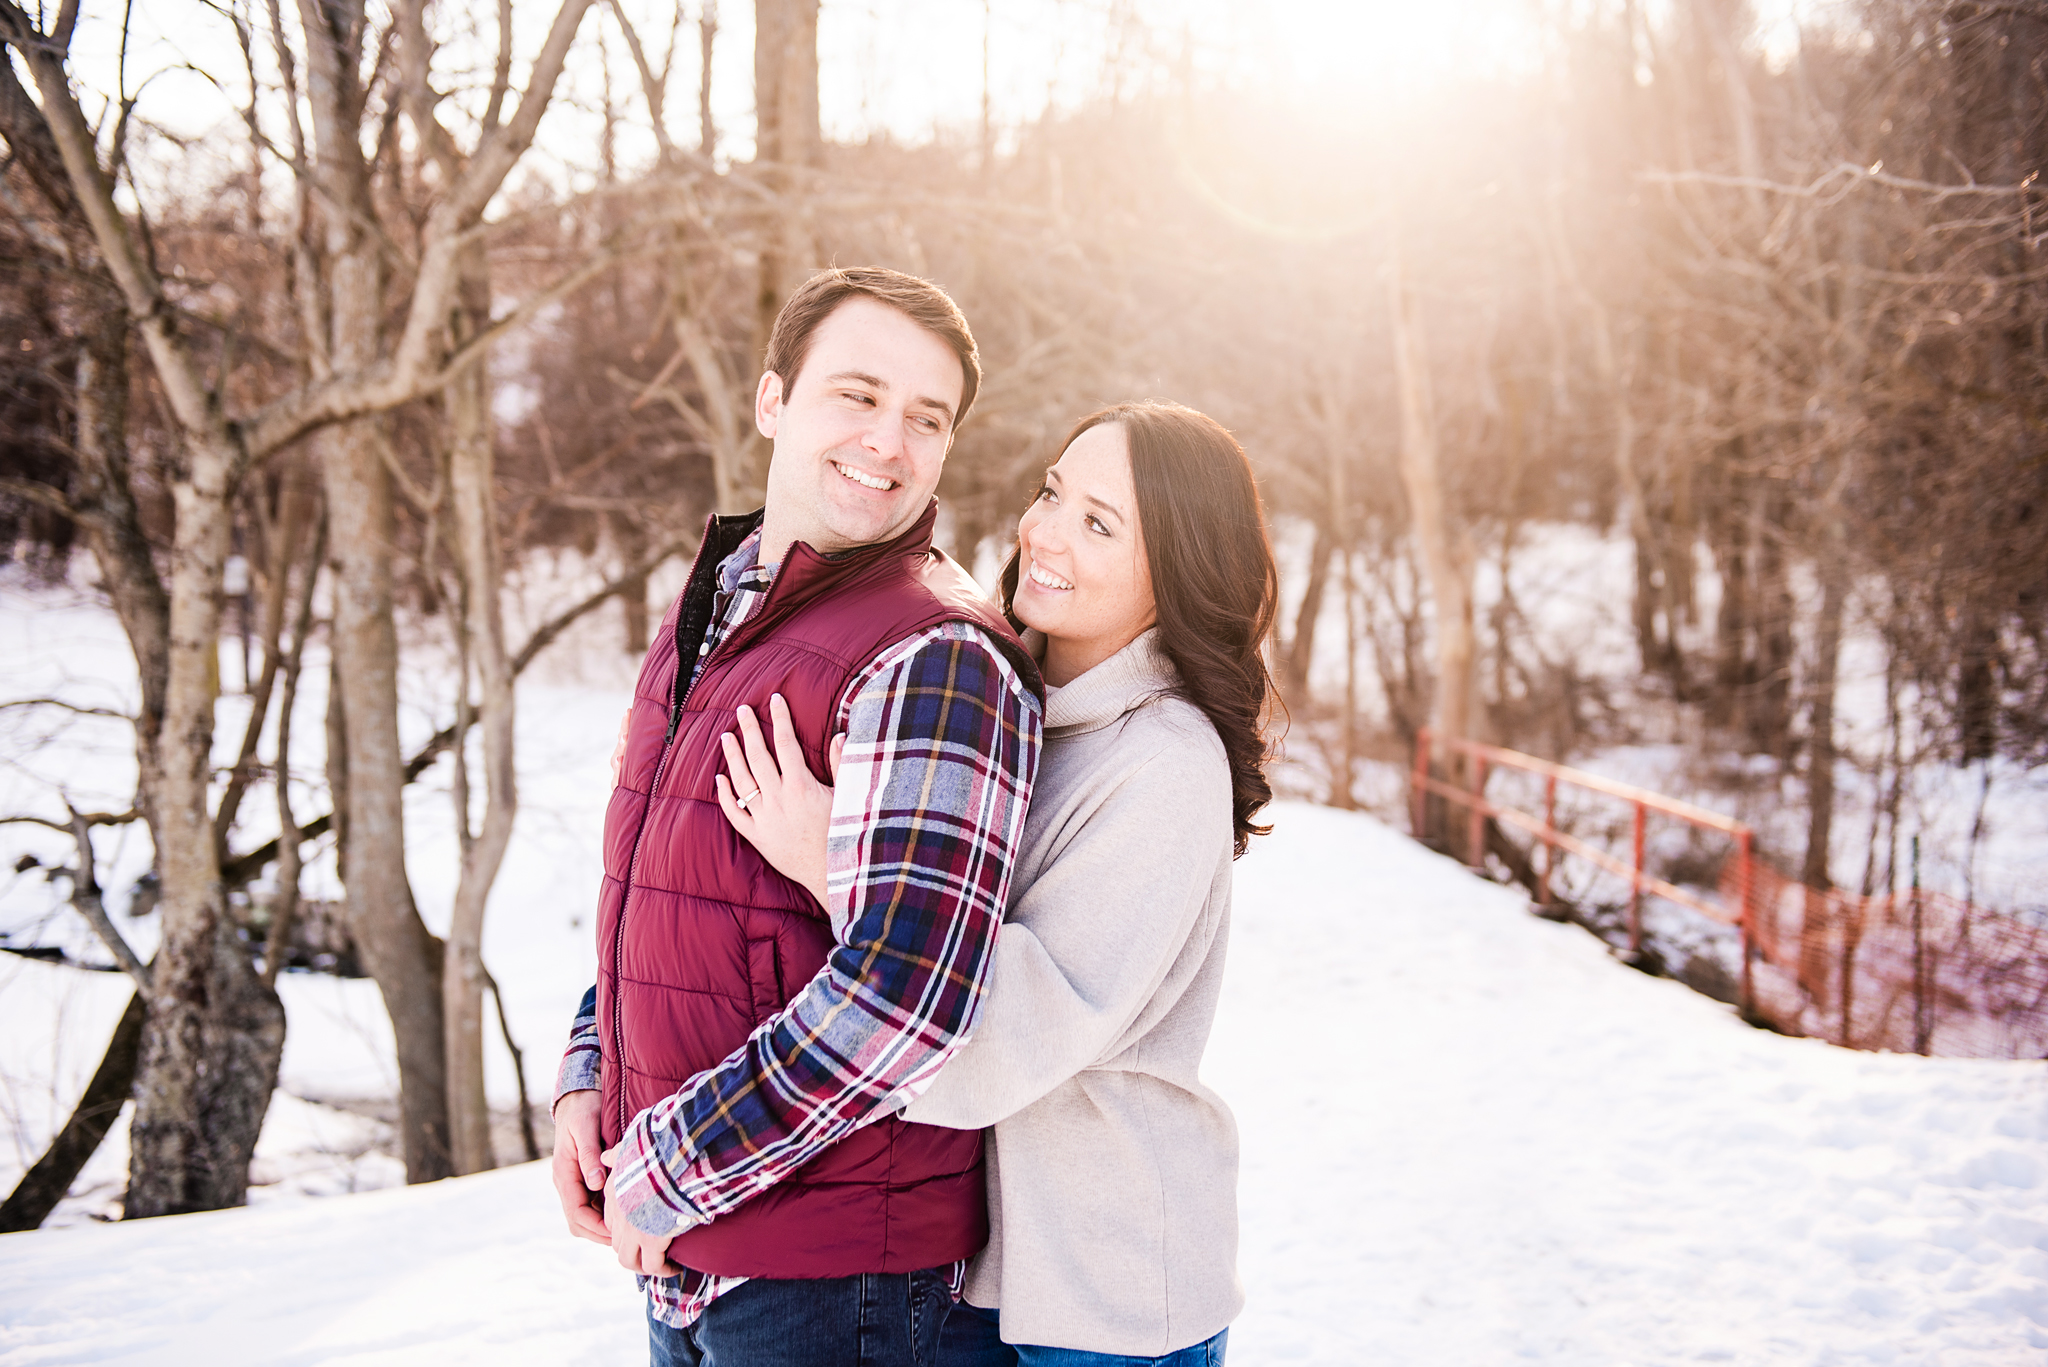 Fallbrook_Central_NY_Engagement_Session_JILL_STUDIO_Rochester_NY_Photographer_DSC_4645.jpg